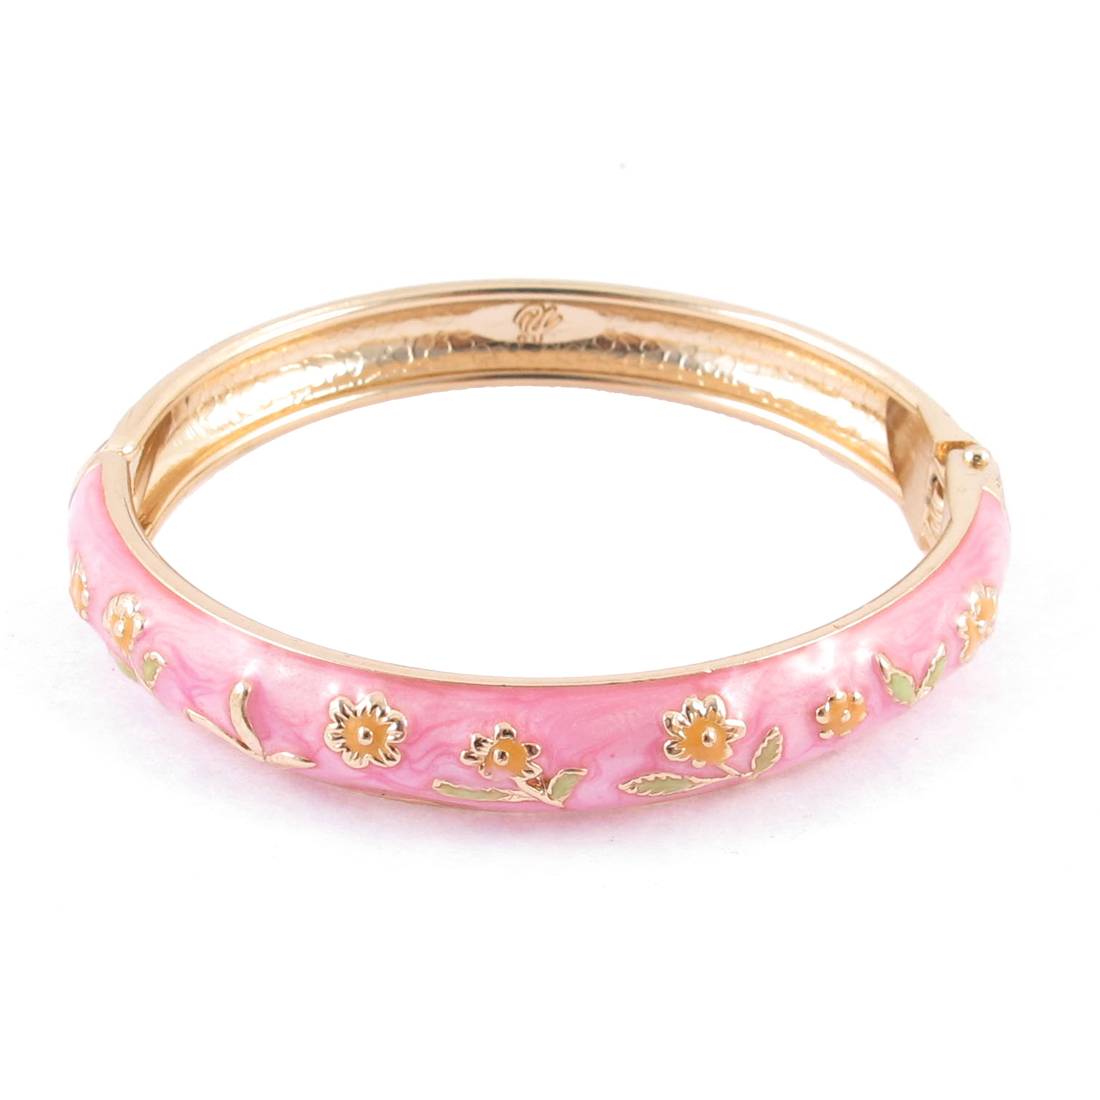 Girls Spring Closure Flower Ornament Round Wrist Bracelet Bangle Pink